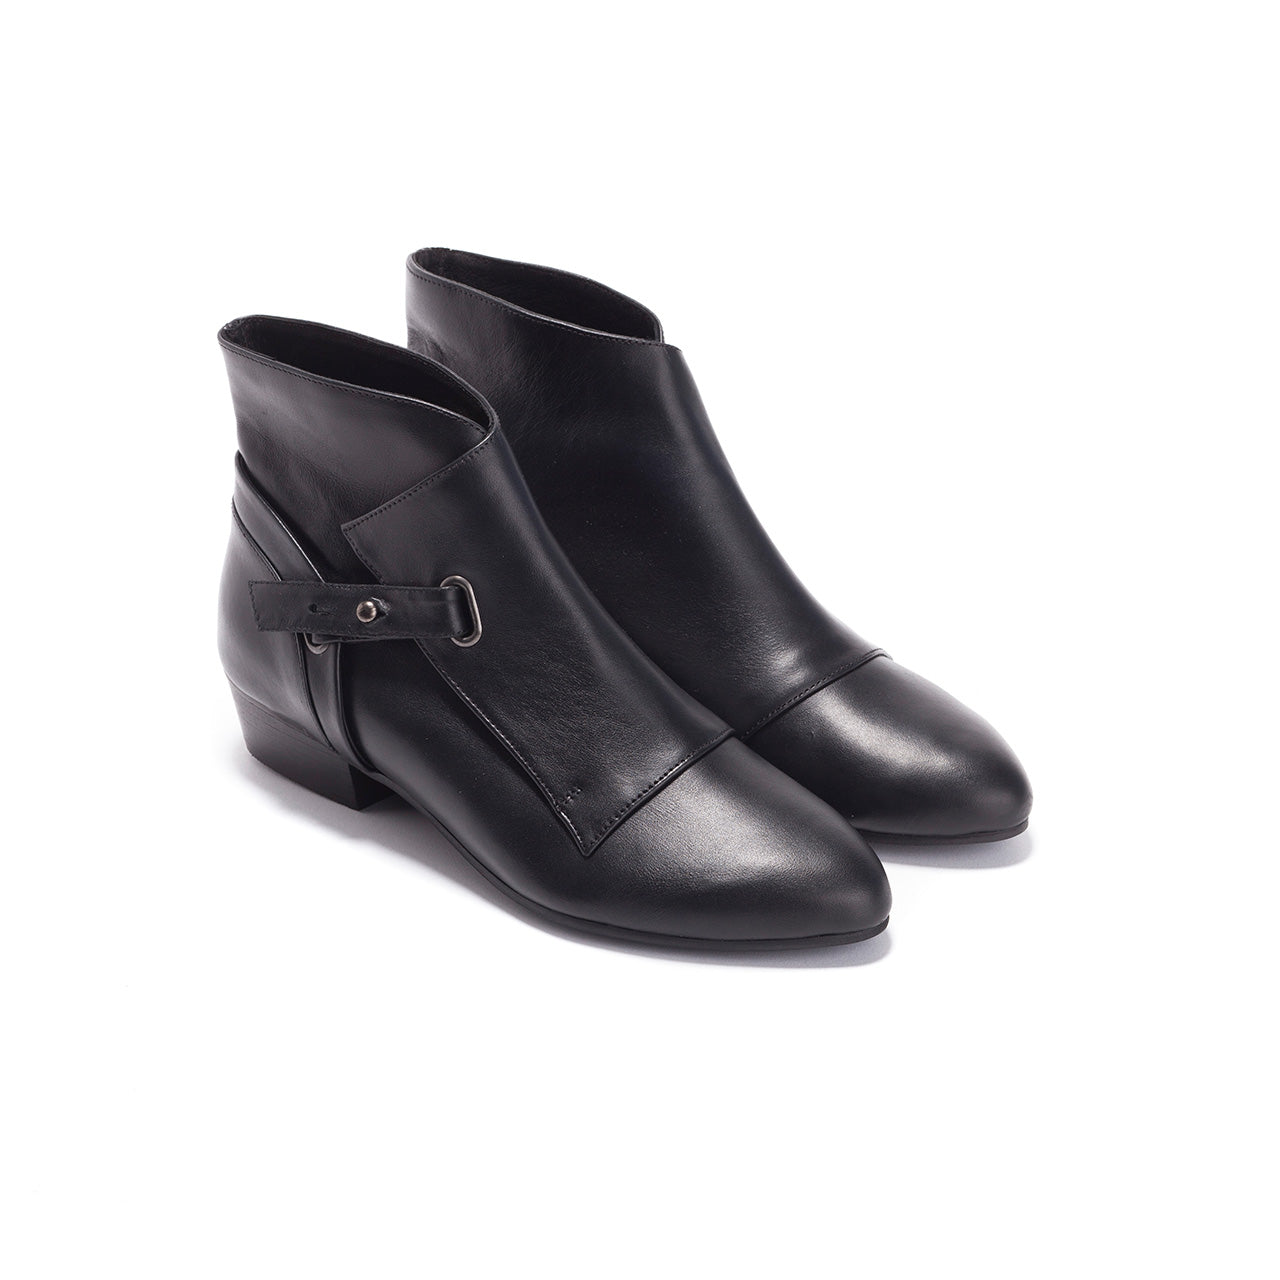 Cara - Black Ankle Boots